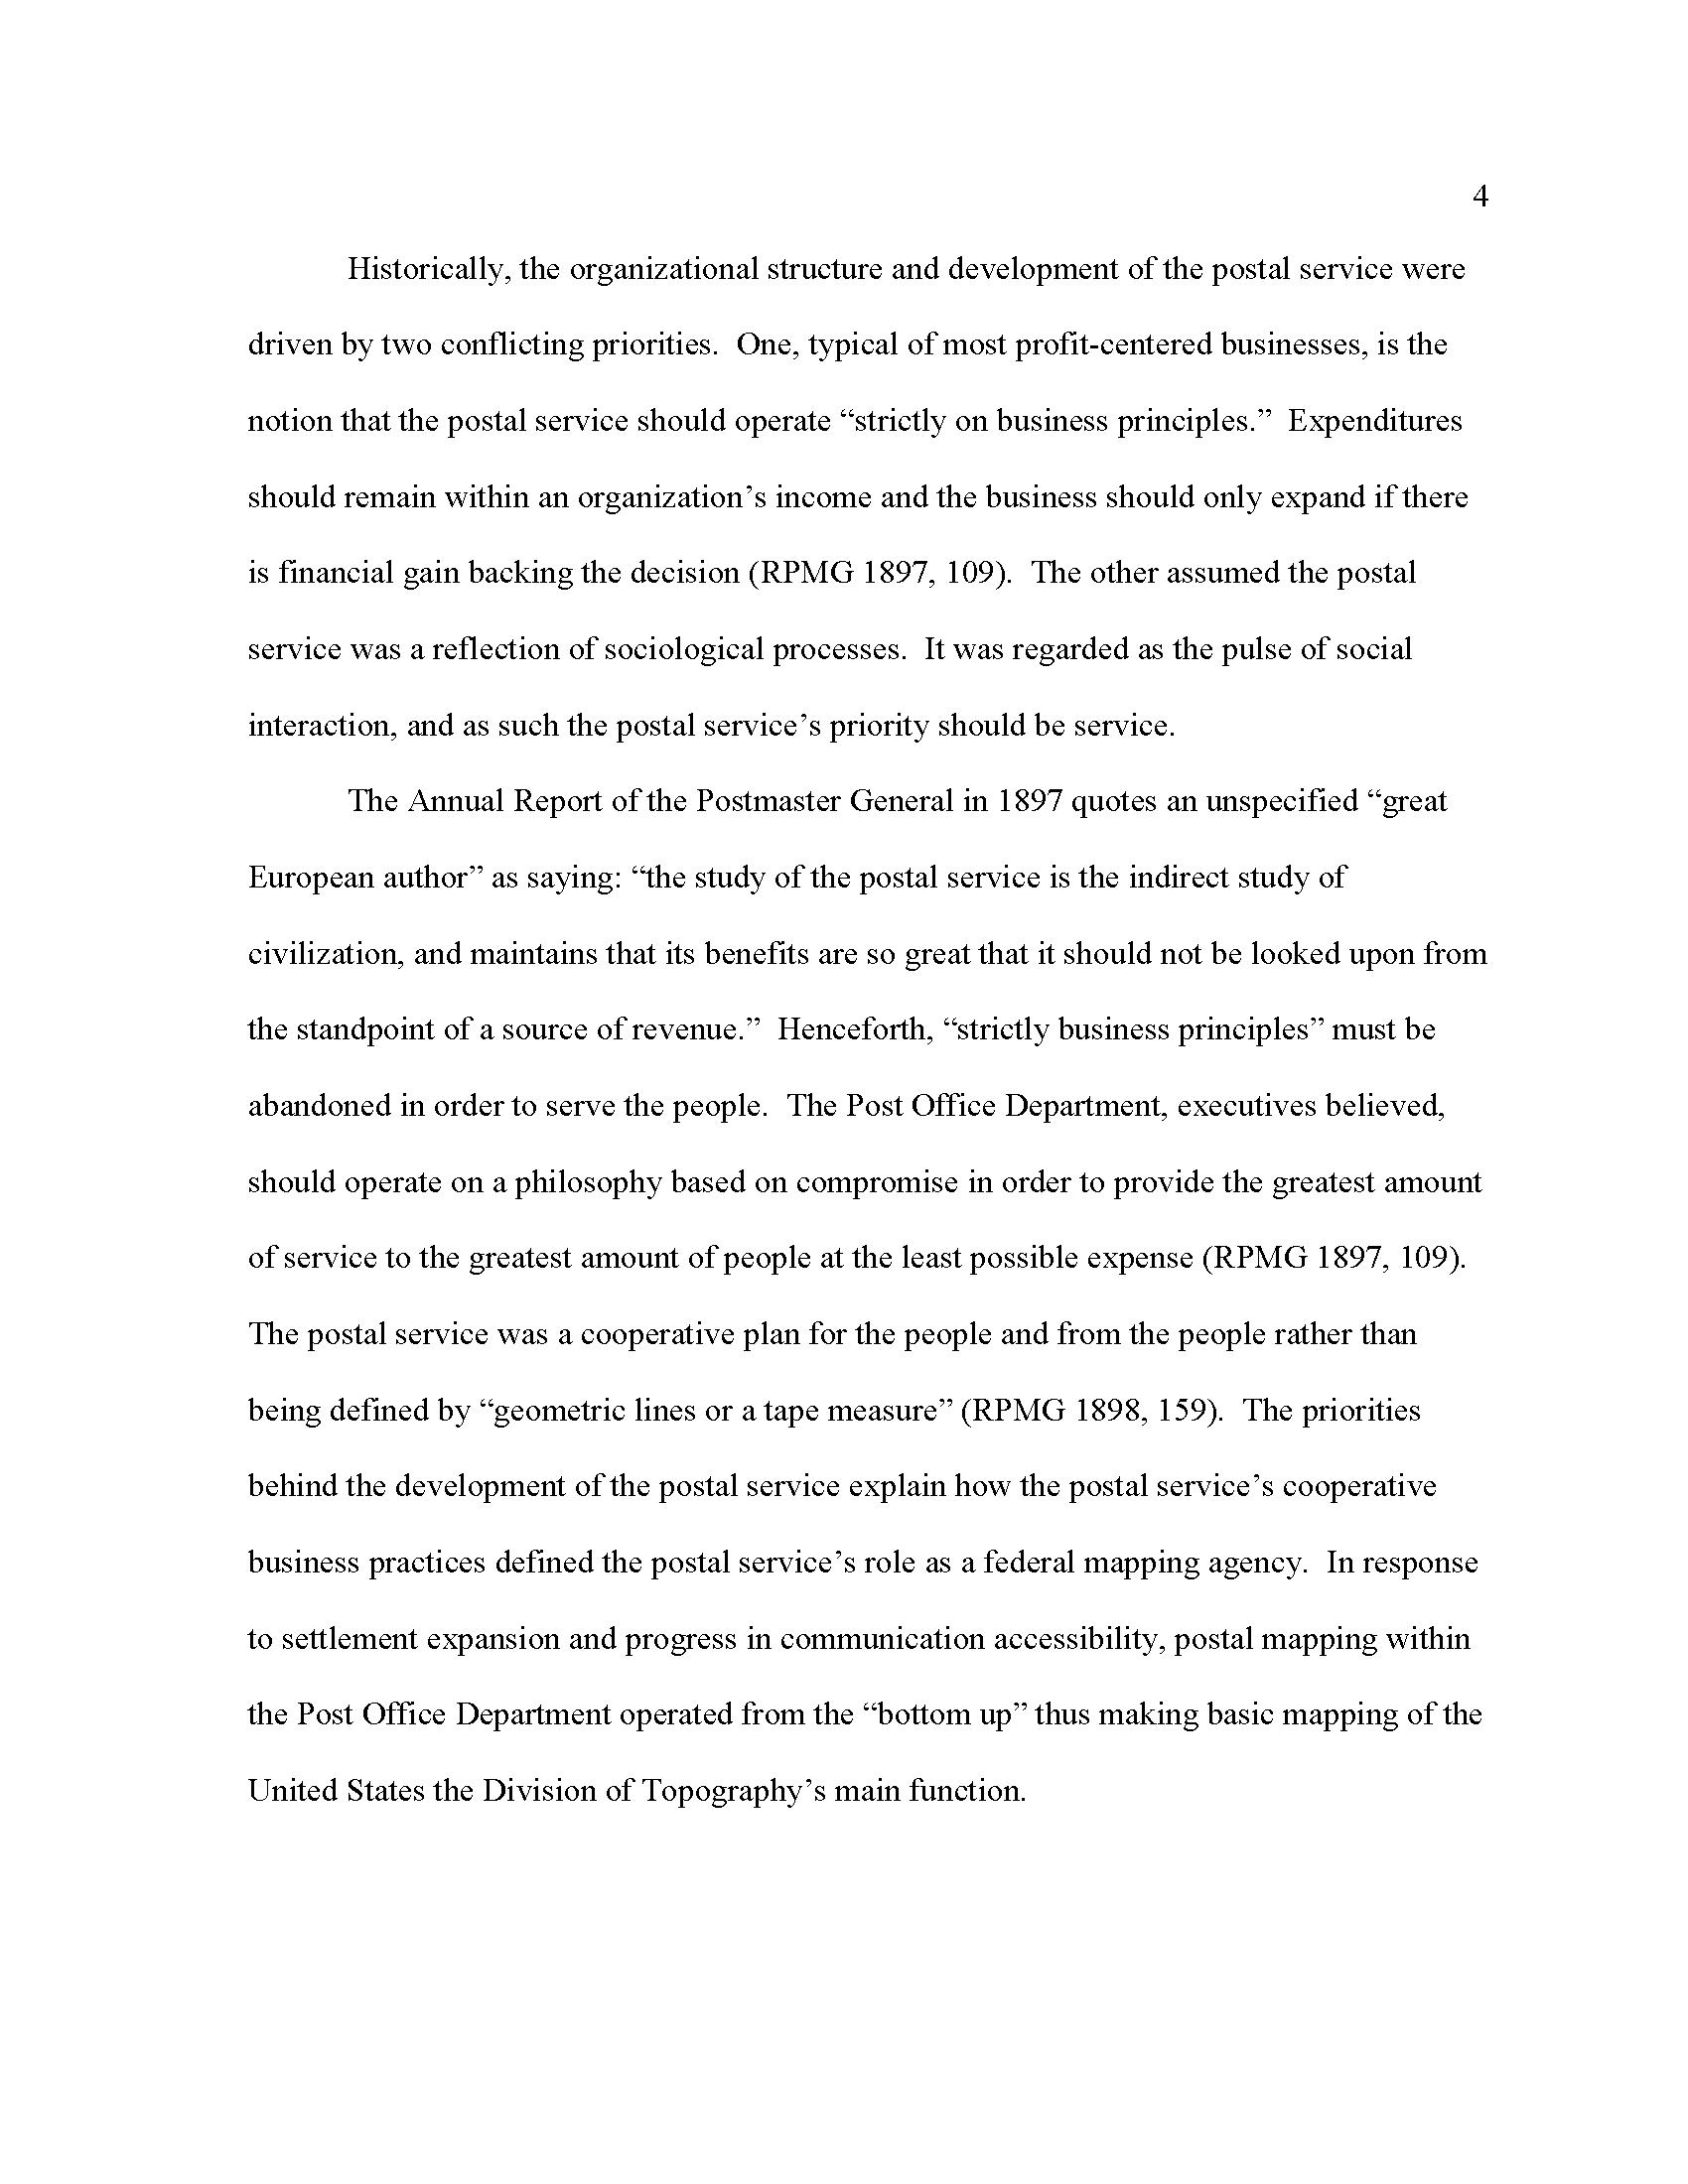 Thesis Final_Page_008.png